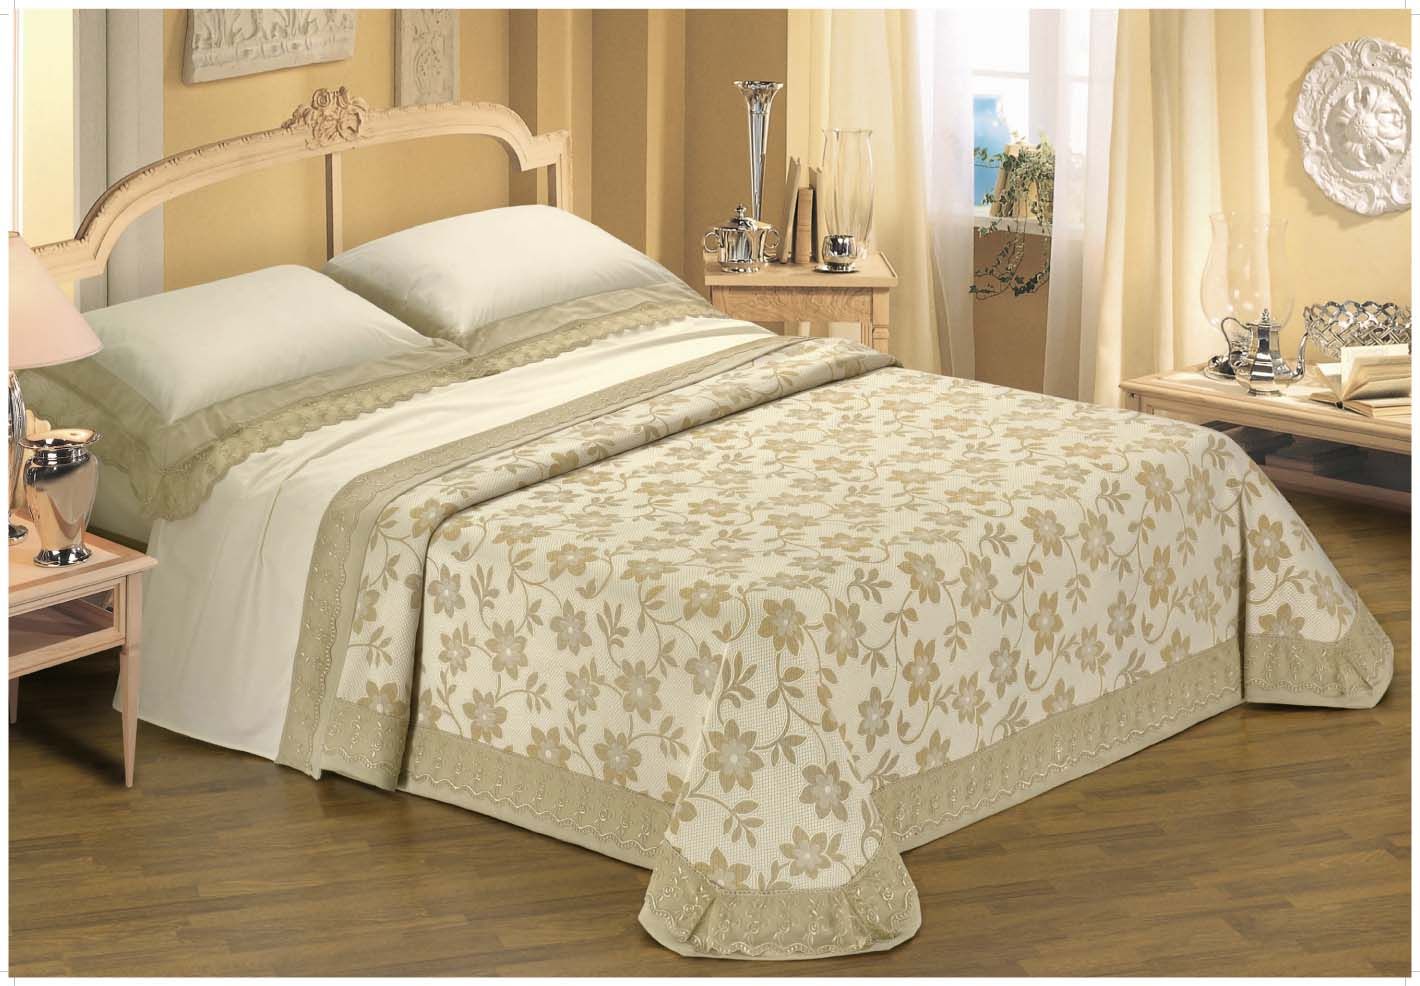 Egyptian linens outlet luxury egyptian cotton bedding for Best egyptian cotton bed sheets